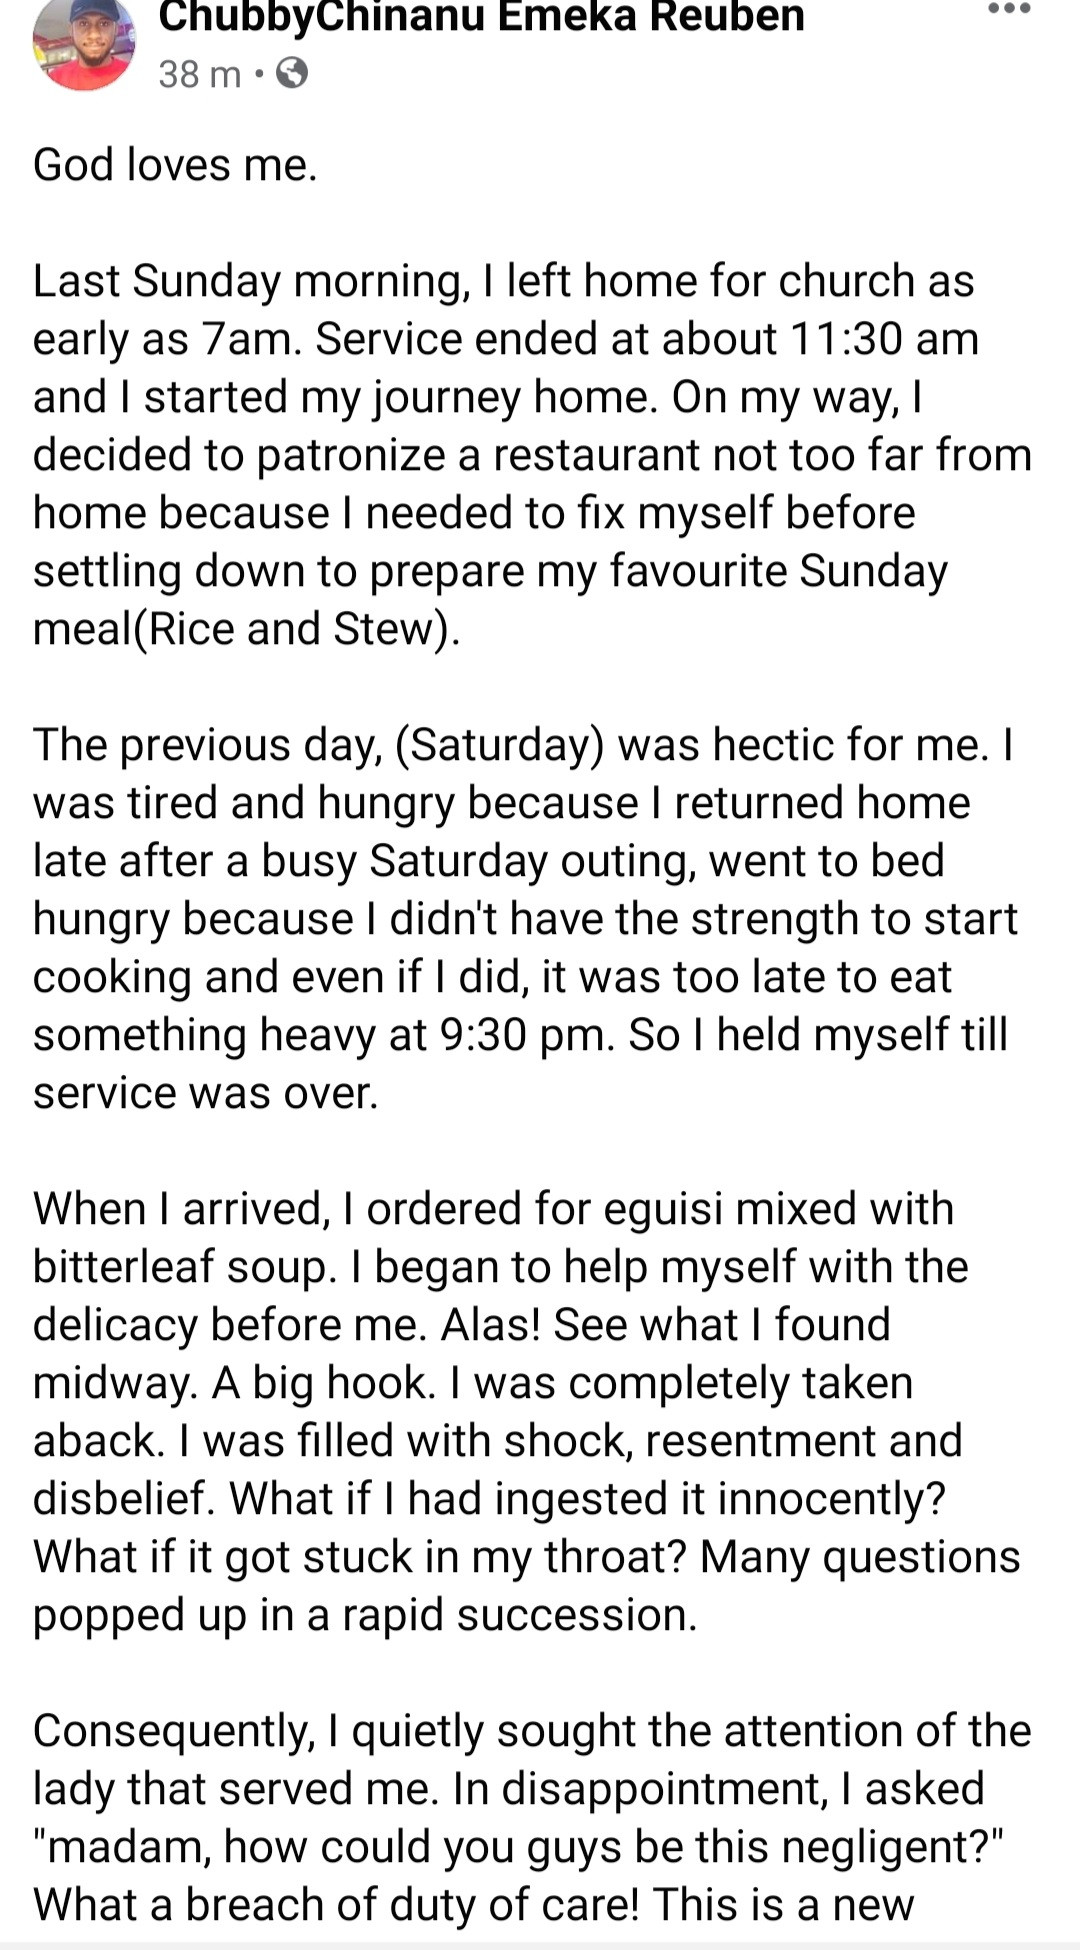 """Man shows the """"hook"""" he found in the soup he was served in a restaurant"""